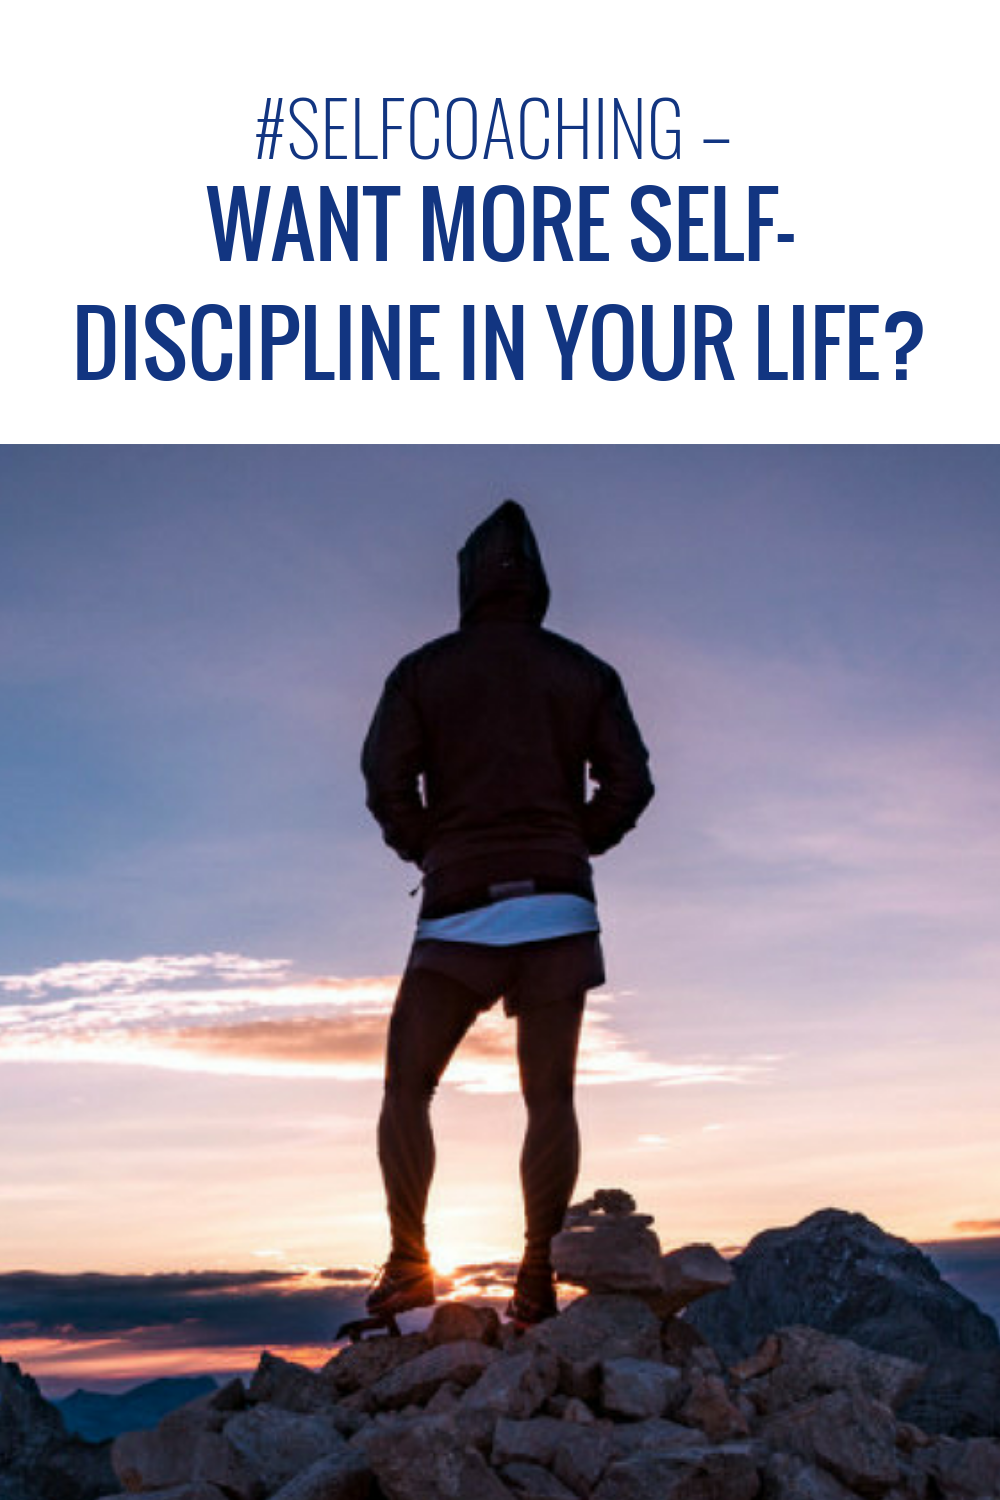 Self-#Coaching - Want more self-discipline in your life?